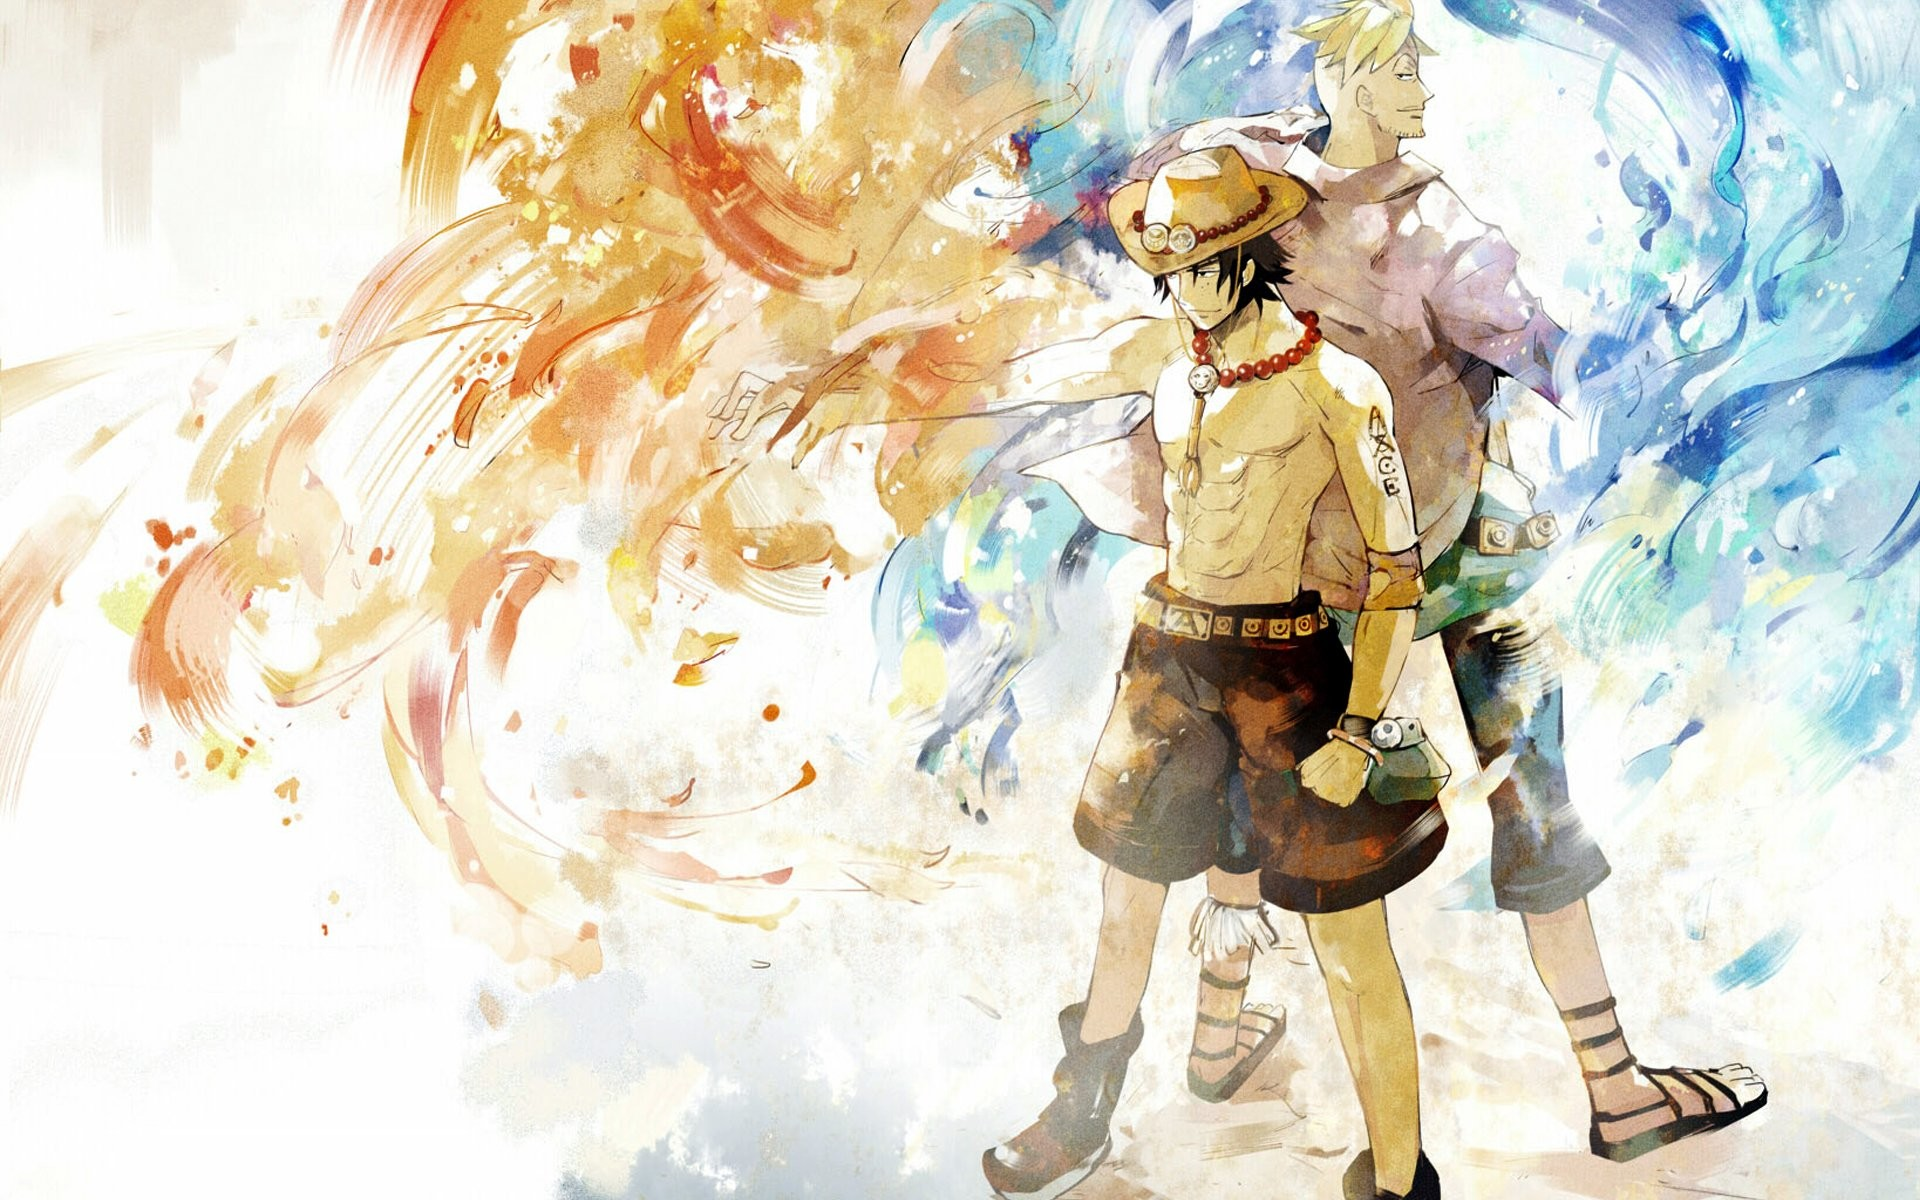 4k one piece wallpaper 60 images - One piece wallpaper ...